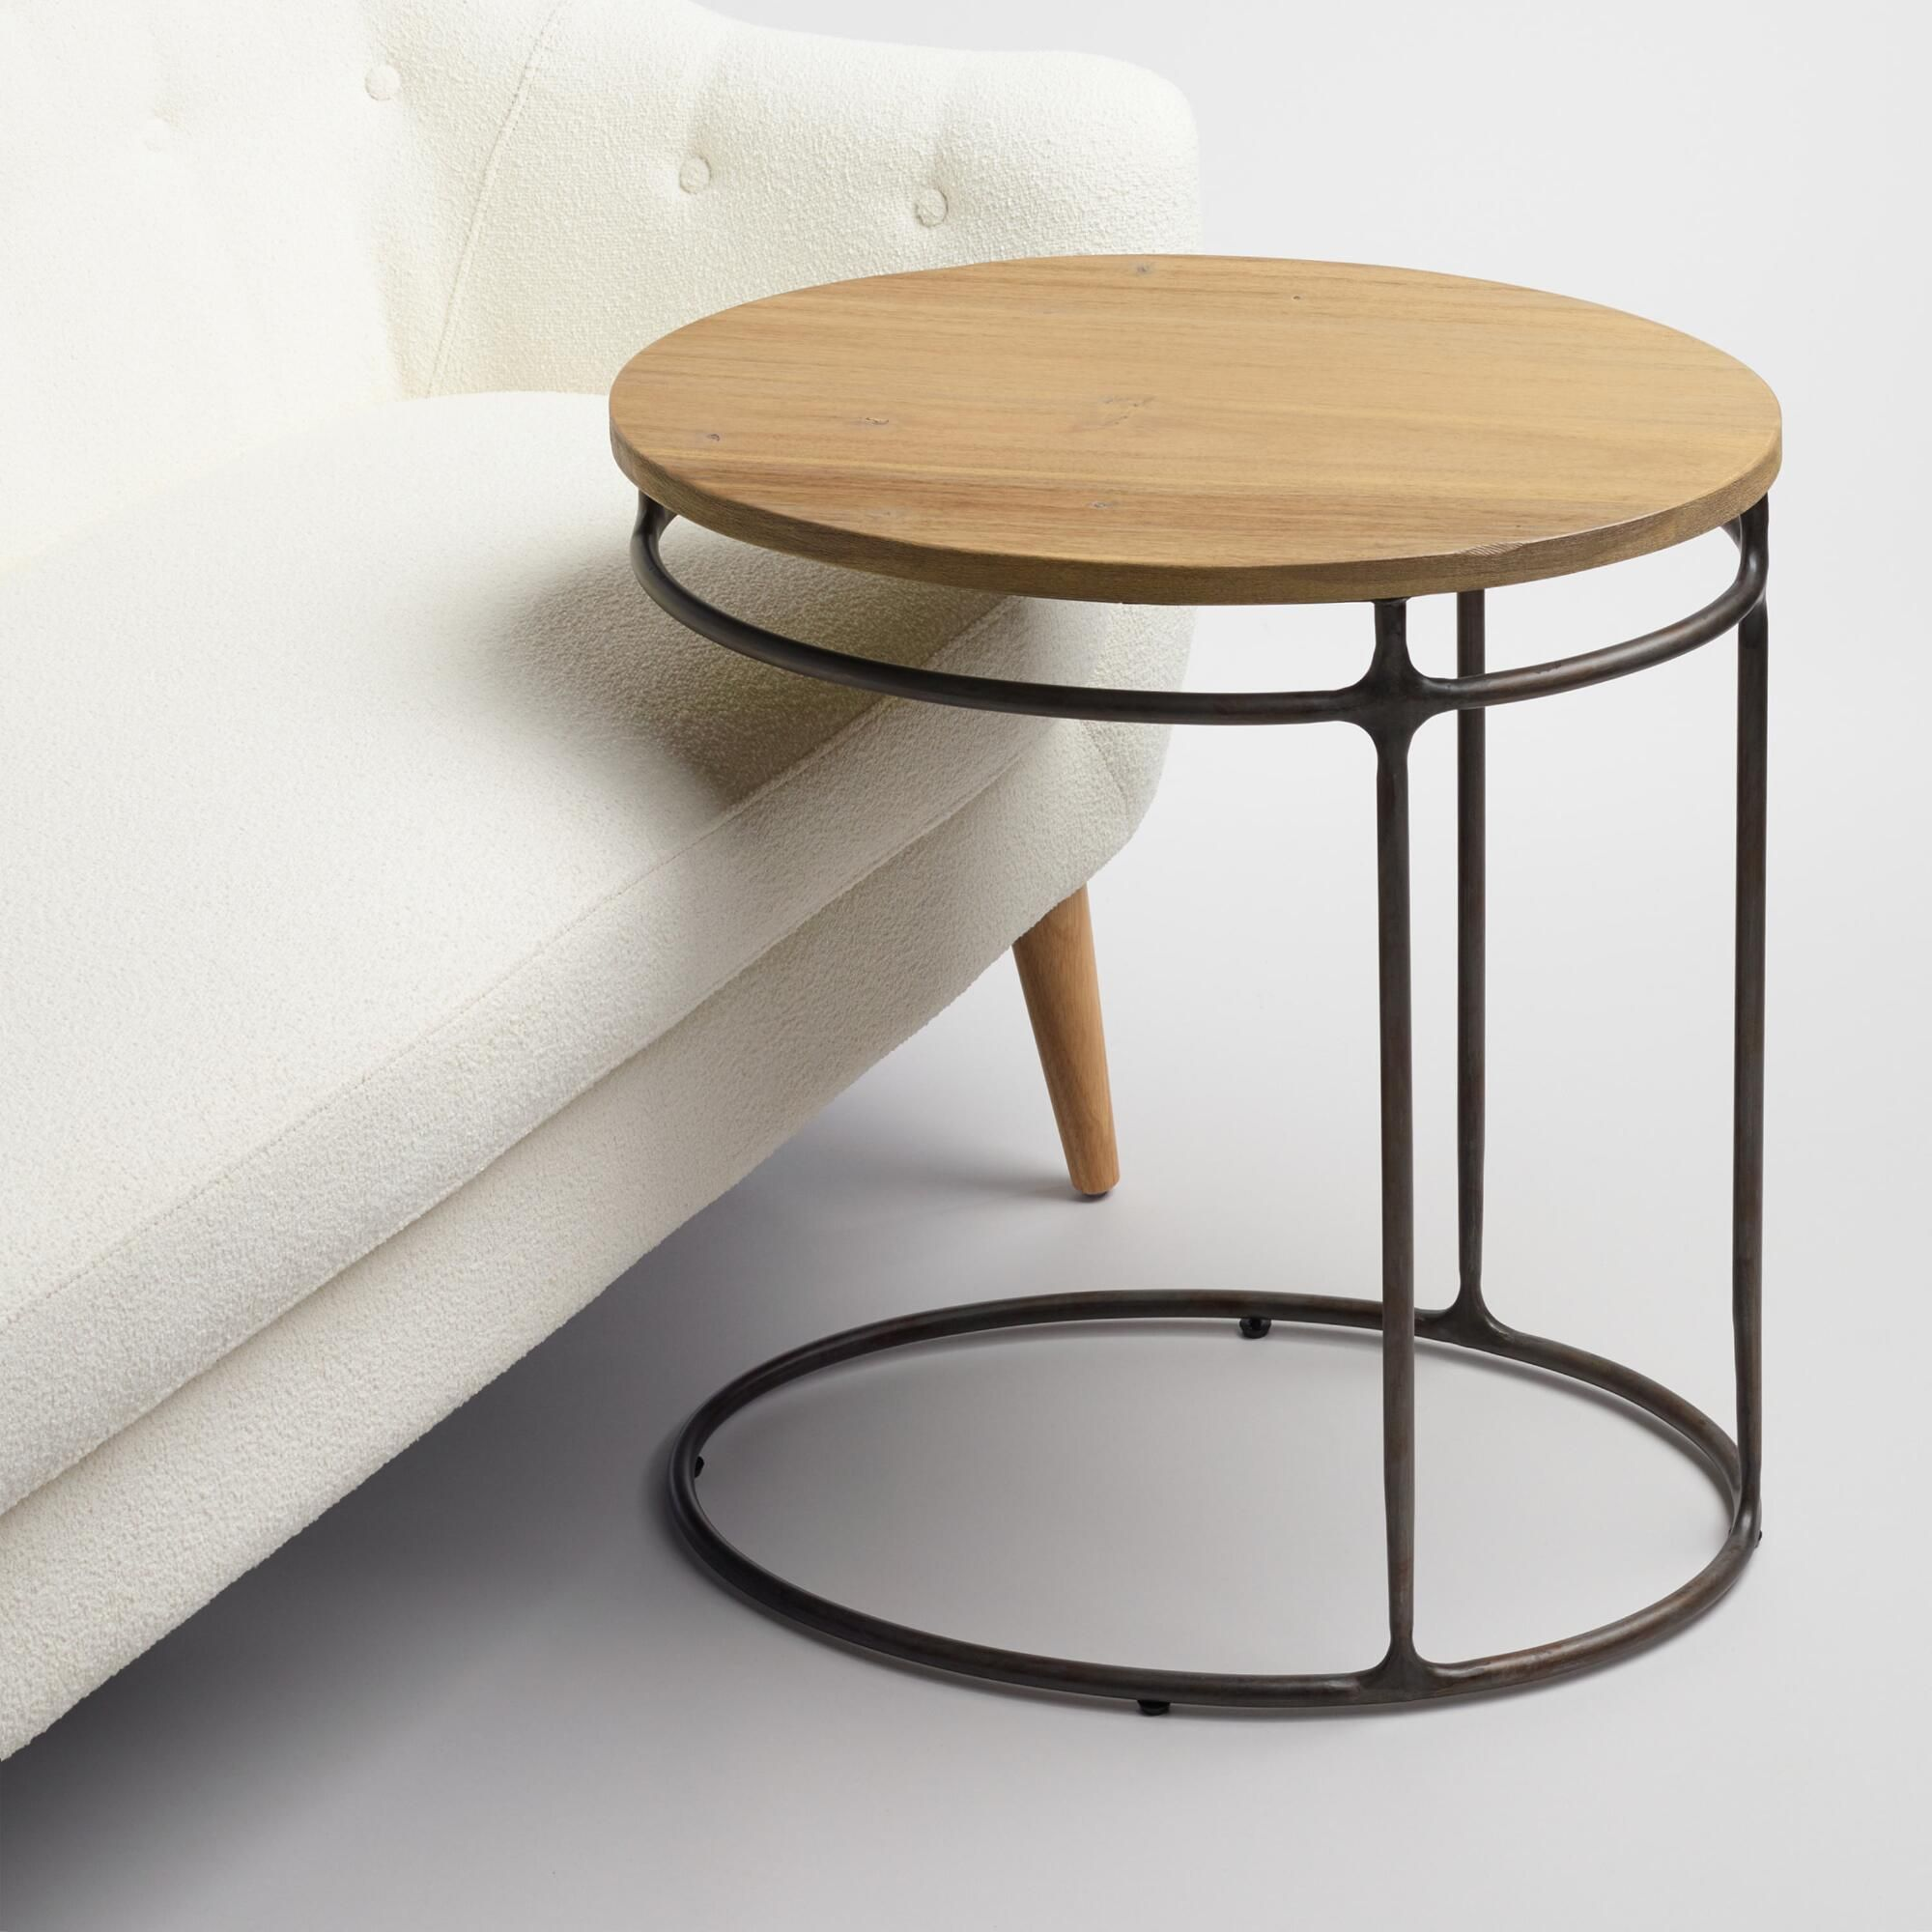 Our Laptop Table Features An Oval Shape That Offers Ample Workspace In One Petite Package Made Of Solid Acacia W Diy Coffee Table Coffee Table Metal Furniture